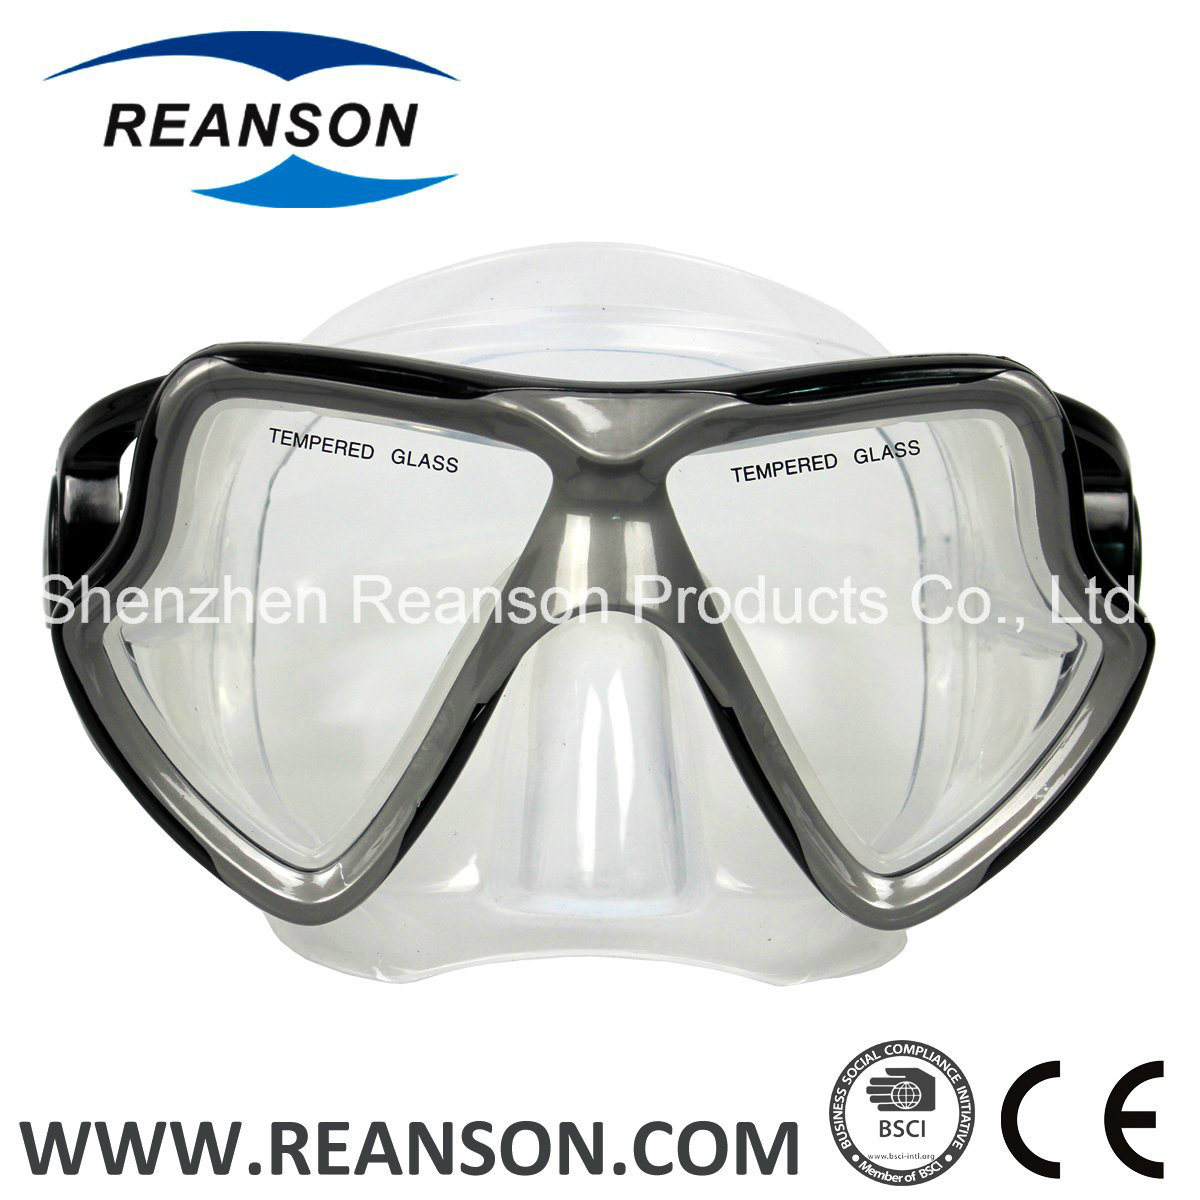 Reanson Professional Tempered Glass Snorkel Diving Mask